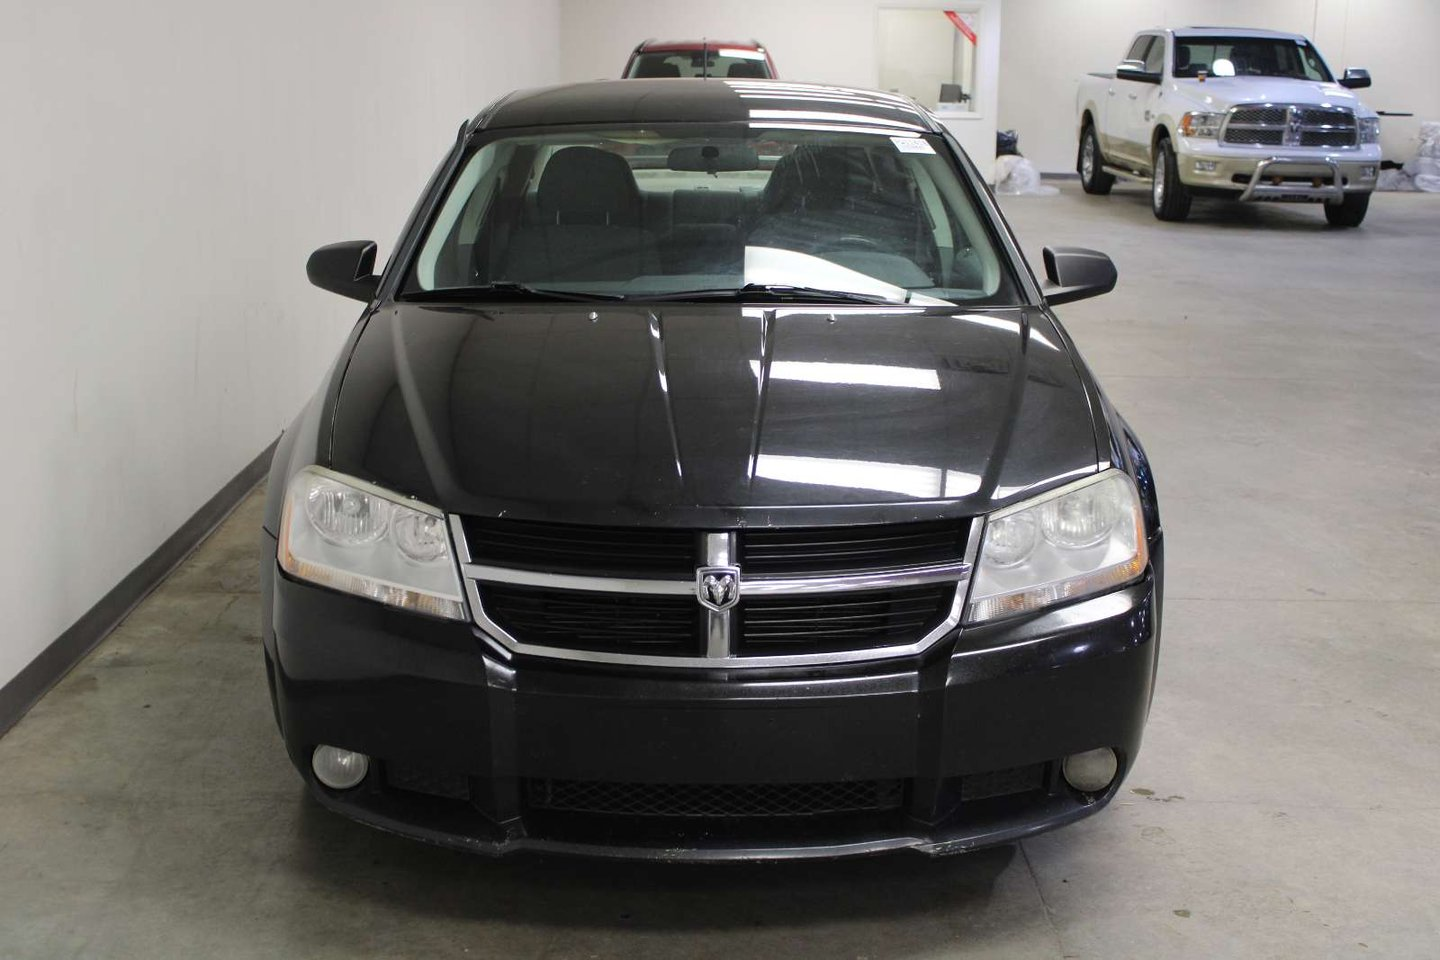 2008 Dodge Avenger SXT for sale in Edmonton, Alberta